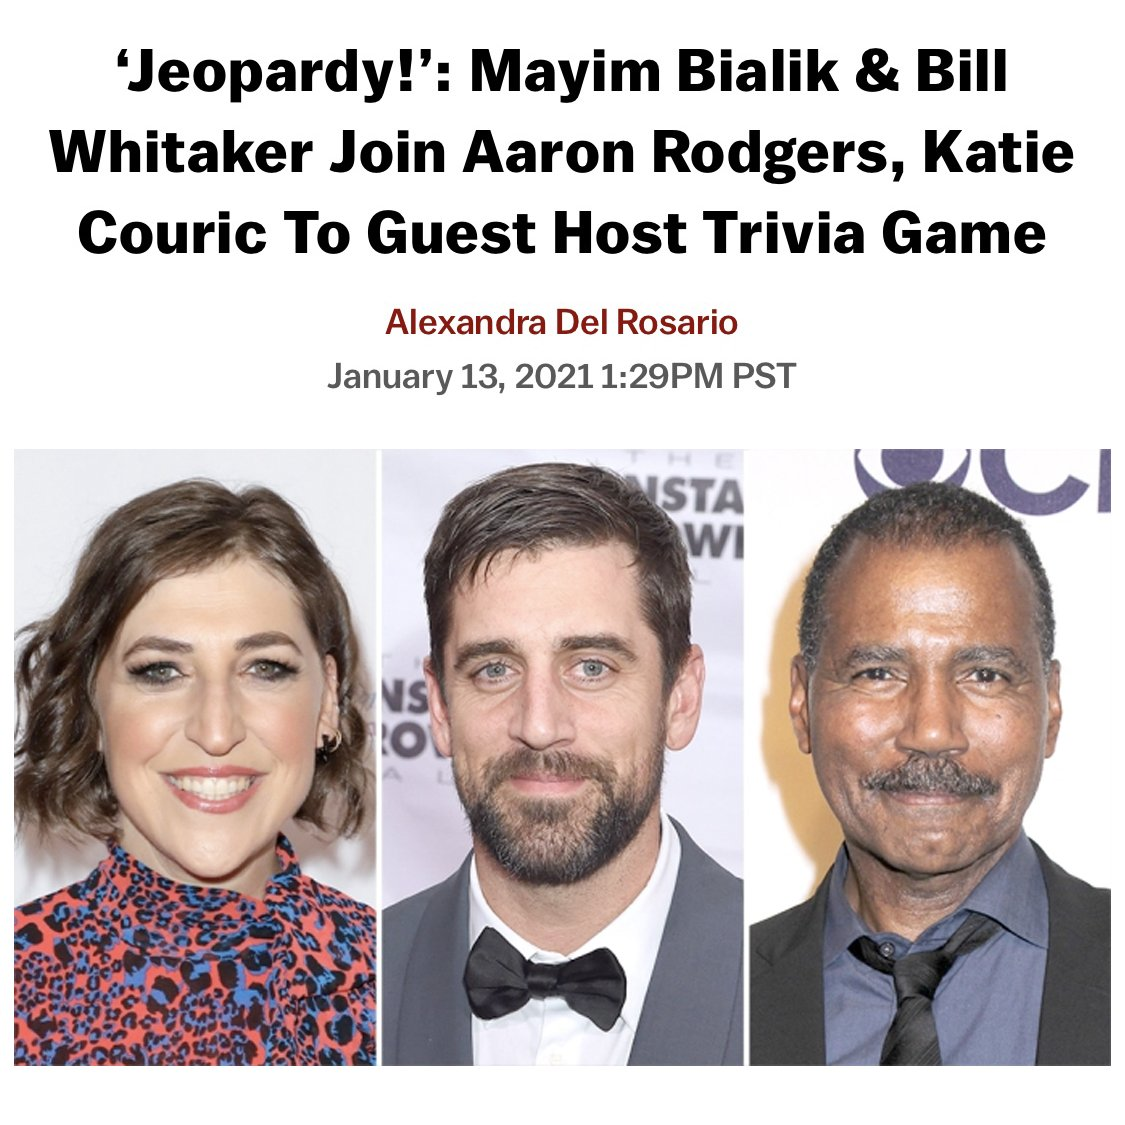 I'll take #DreamComeTrue for $500 please.  From being an answer on the show... to guest hosting... this is literally a dream come true for me. I've been such a fan of @Jeopardy and Alex Trebek since I can remember. It will be an honor to guest host & celebrate his great legacy.🙏🏽